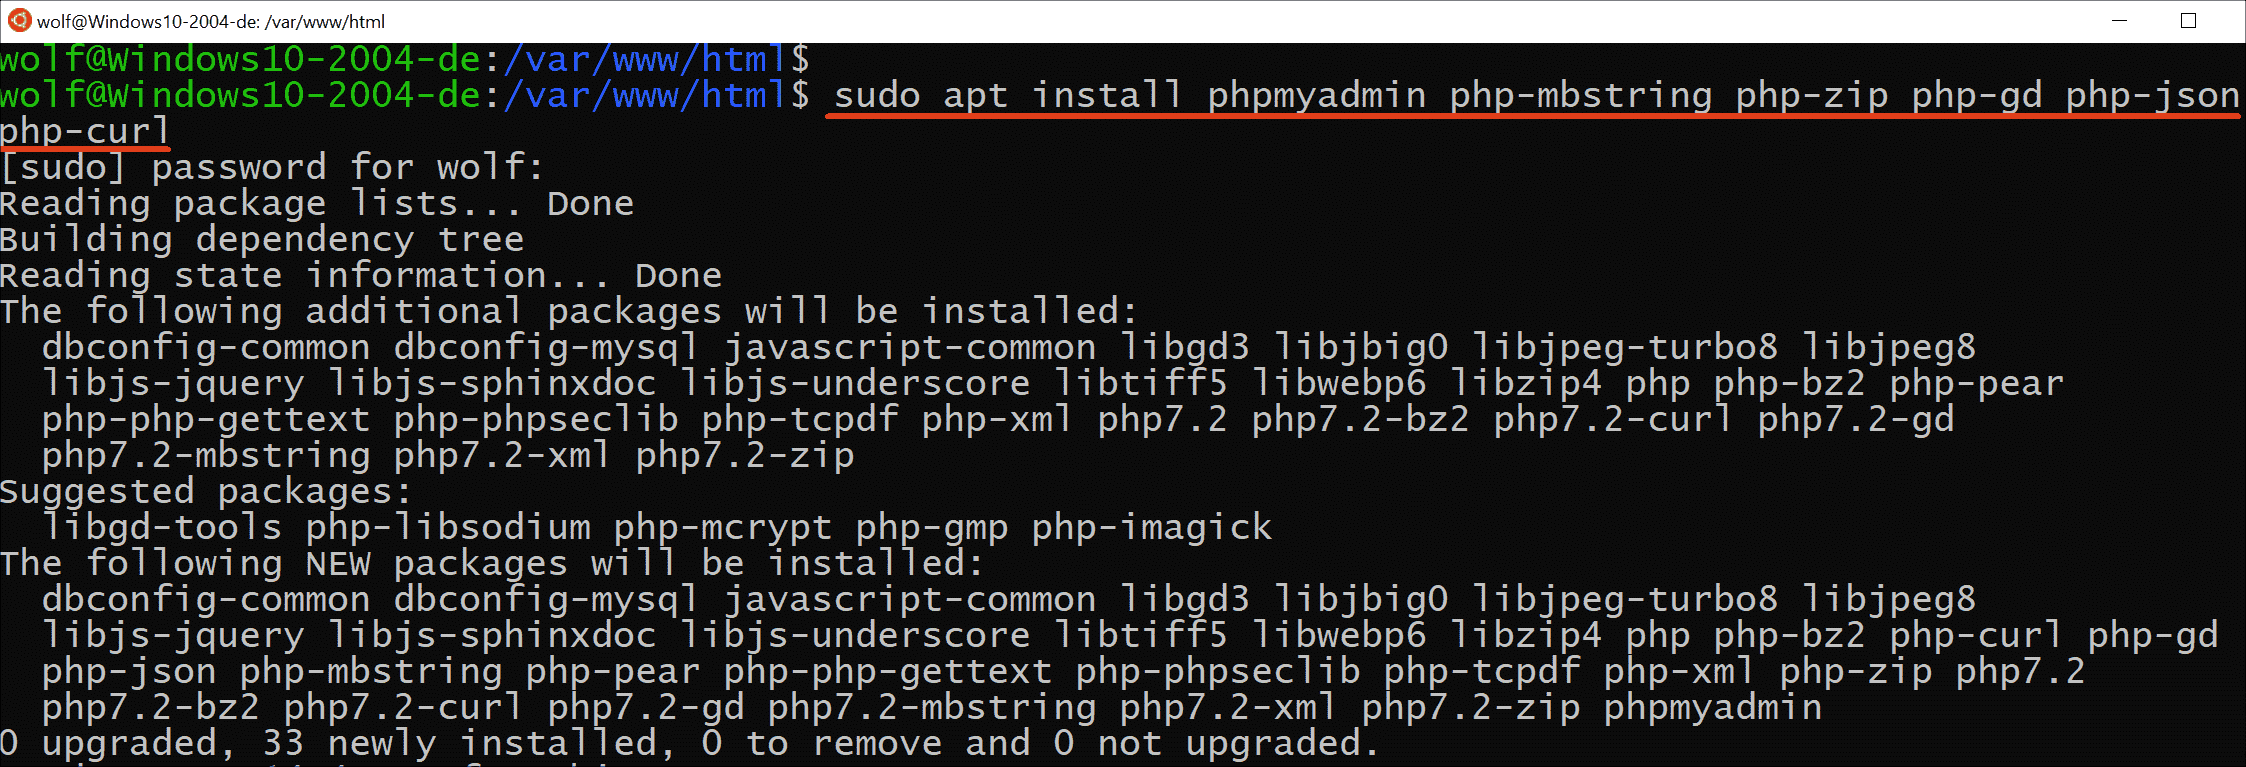 Installing phpMyAdmin including some PHP modules